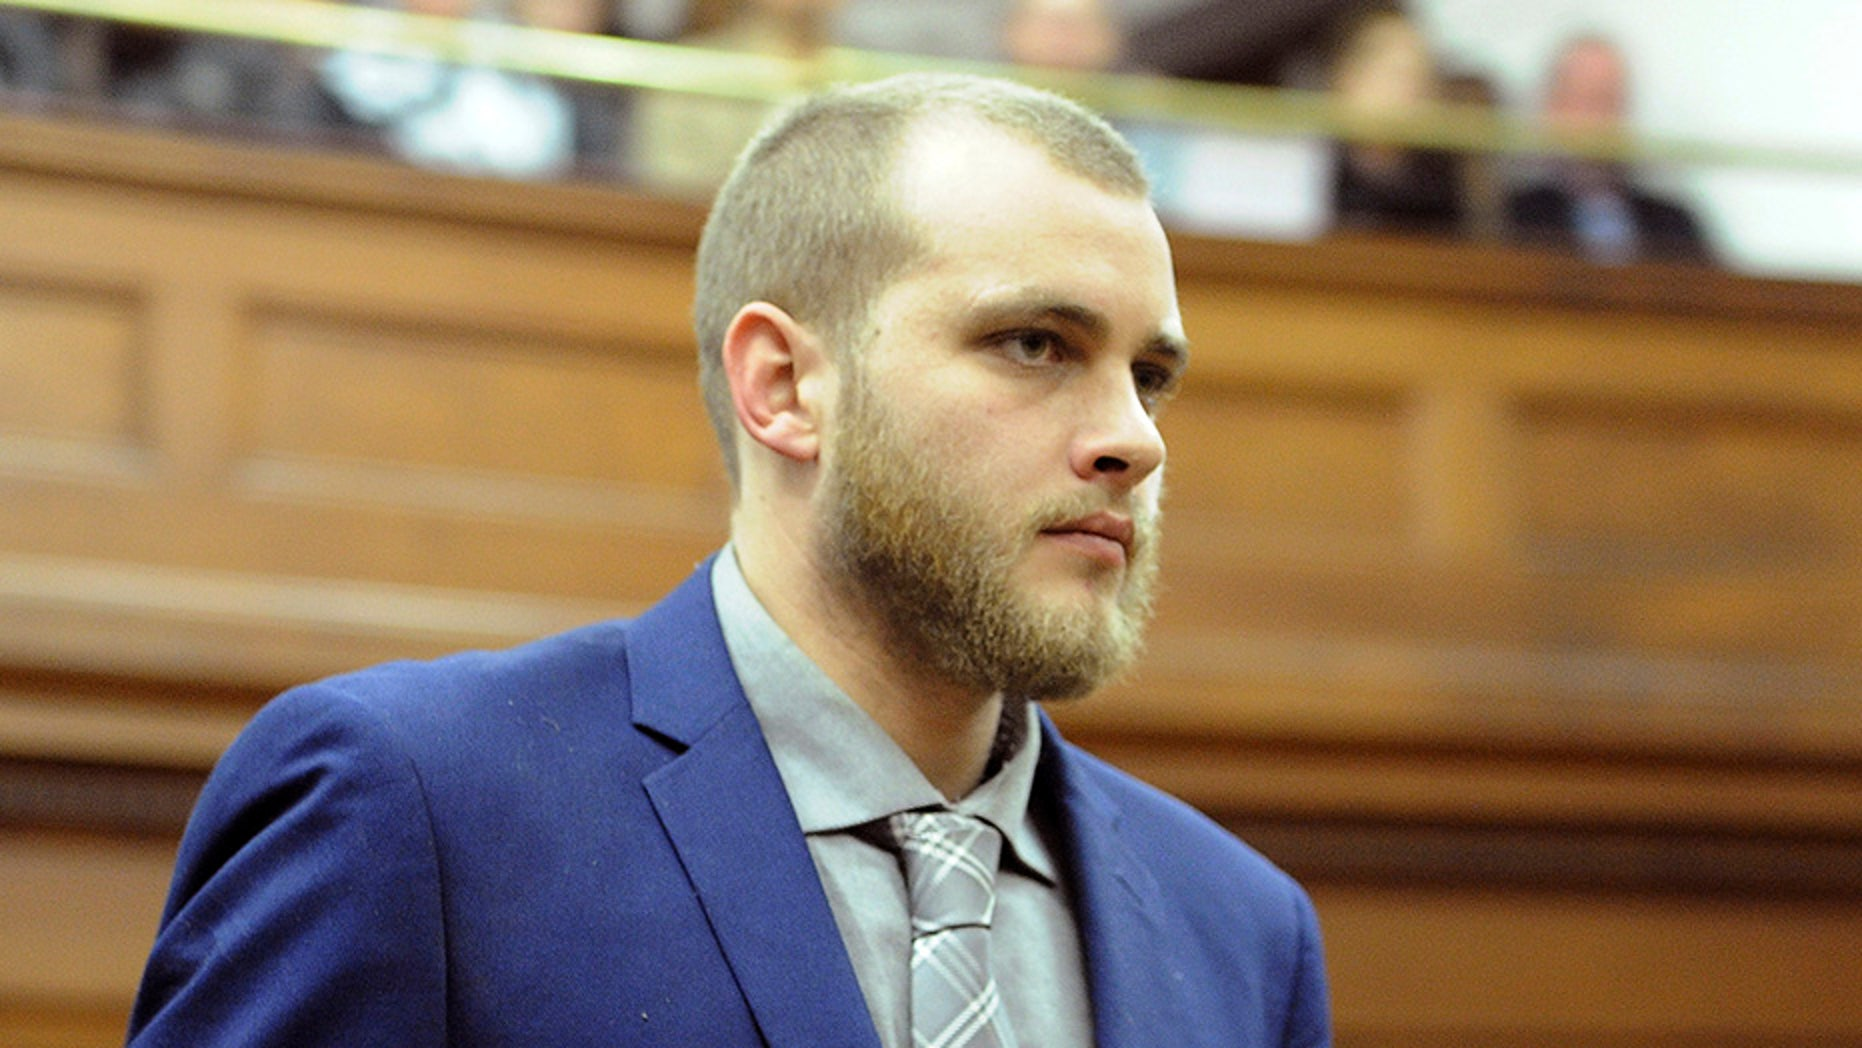 May 21, 2018: Henri van Breda arrives in the High Court in Cape Town, South Africa.